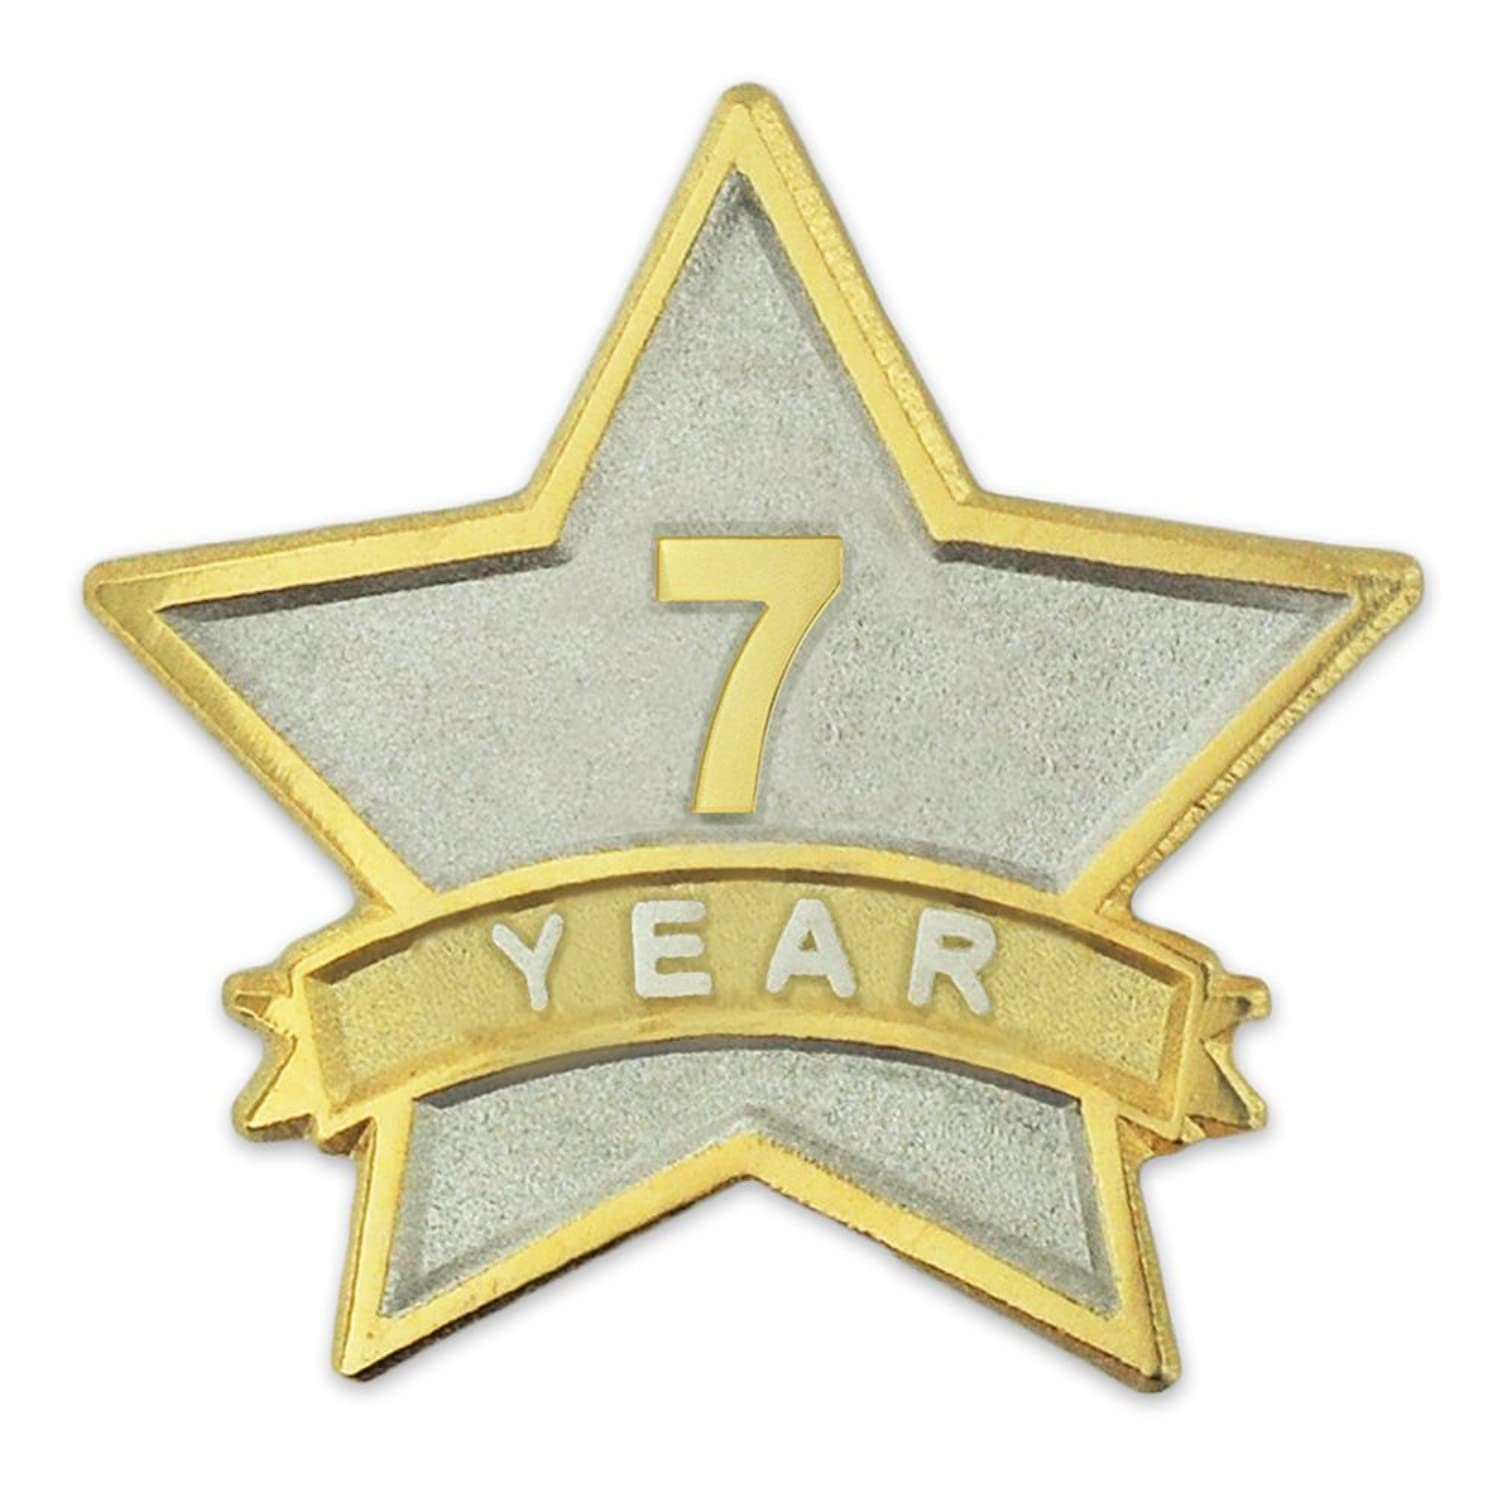 PinMart's 7 Year Service Award Star Corporate Recognition Dual Plated Lapel Pin